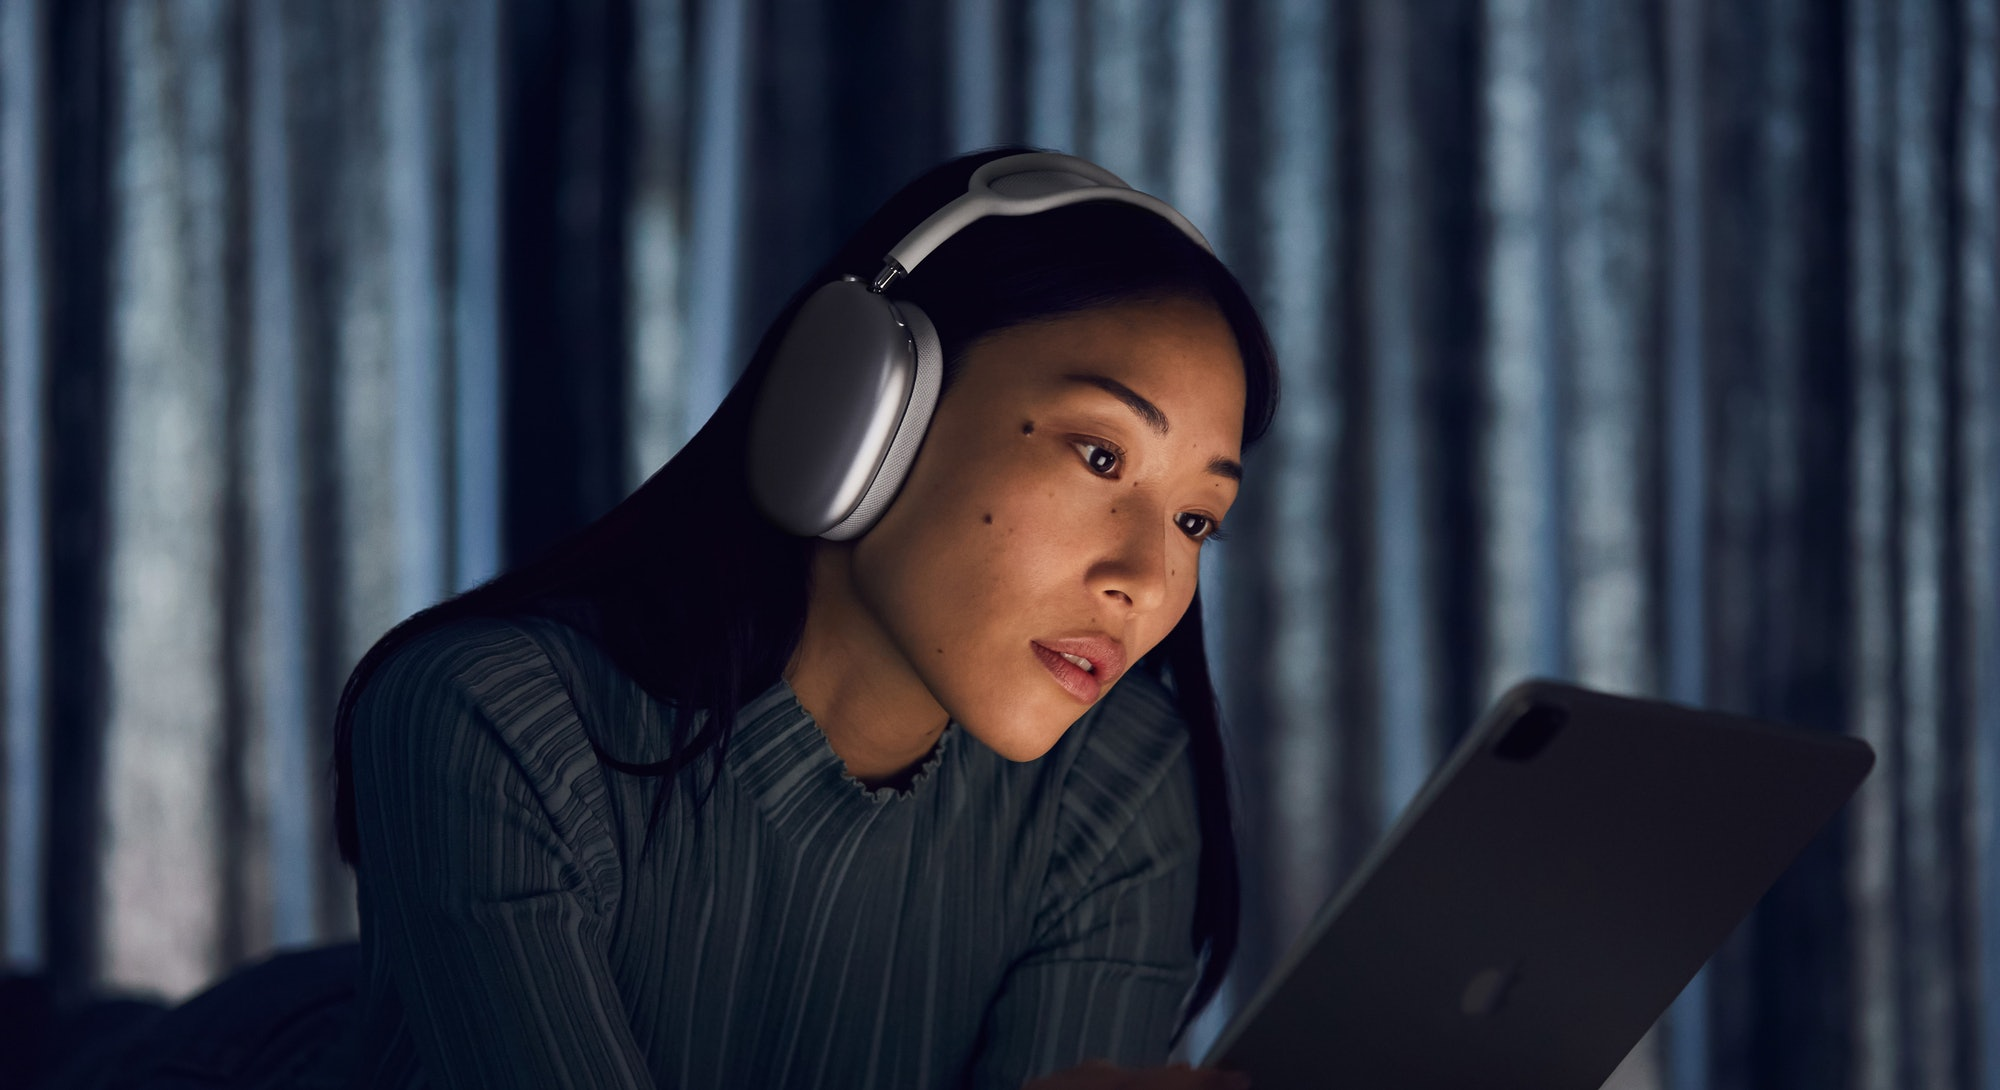 A woman wears Apple's new AirPods Max while on her iPad at night.